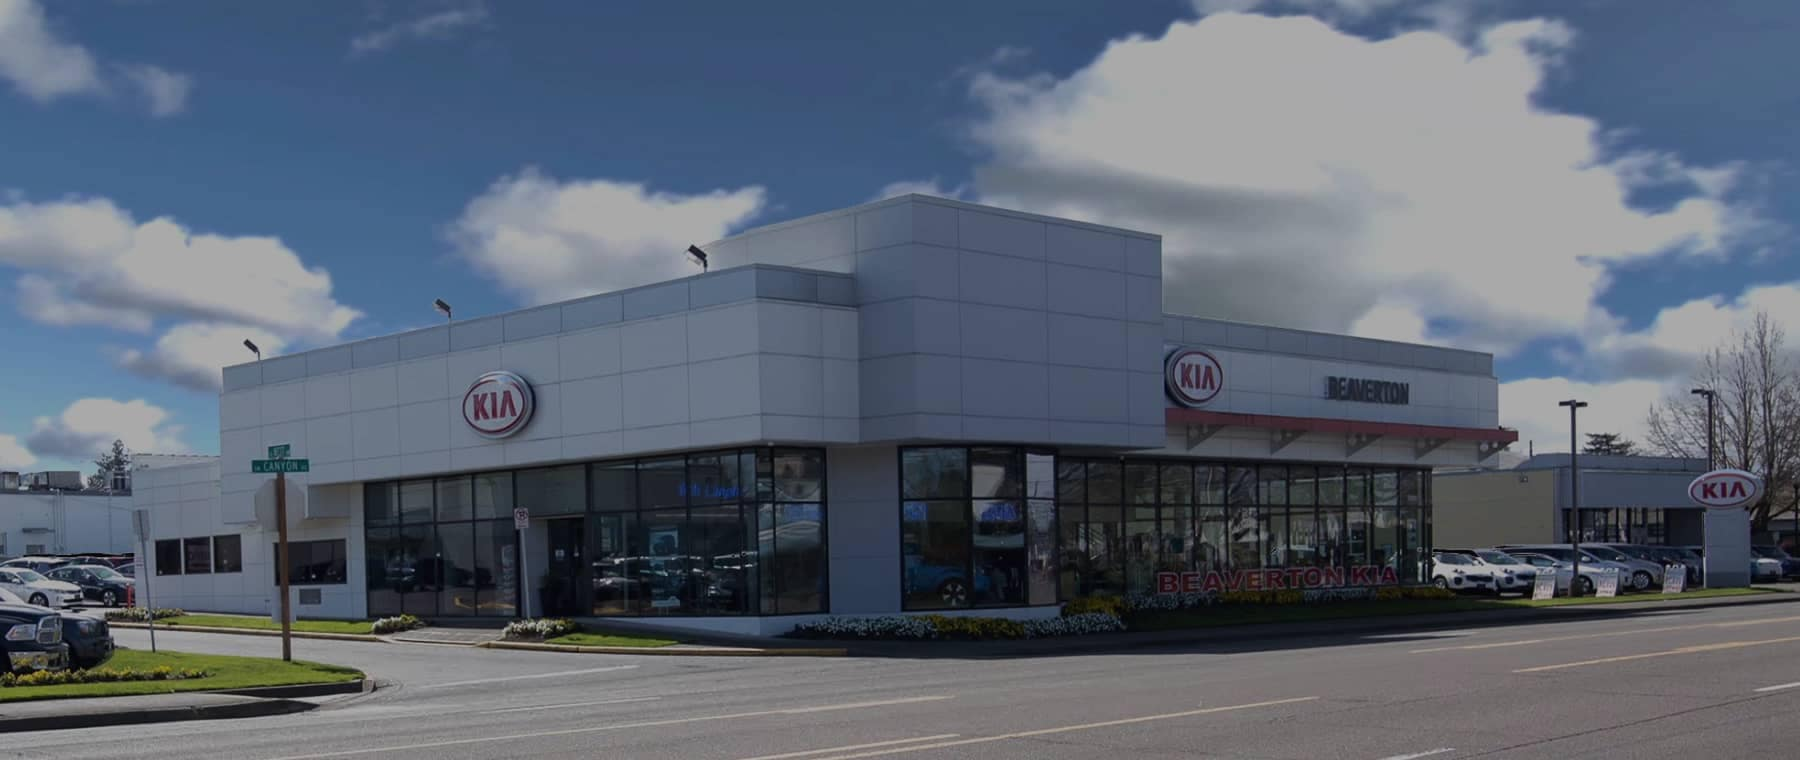 dealership kia sell me mccarty niro near dealerships melissa of k bets to on unique